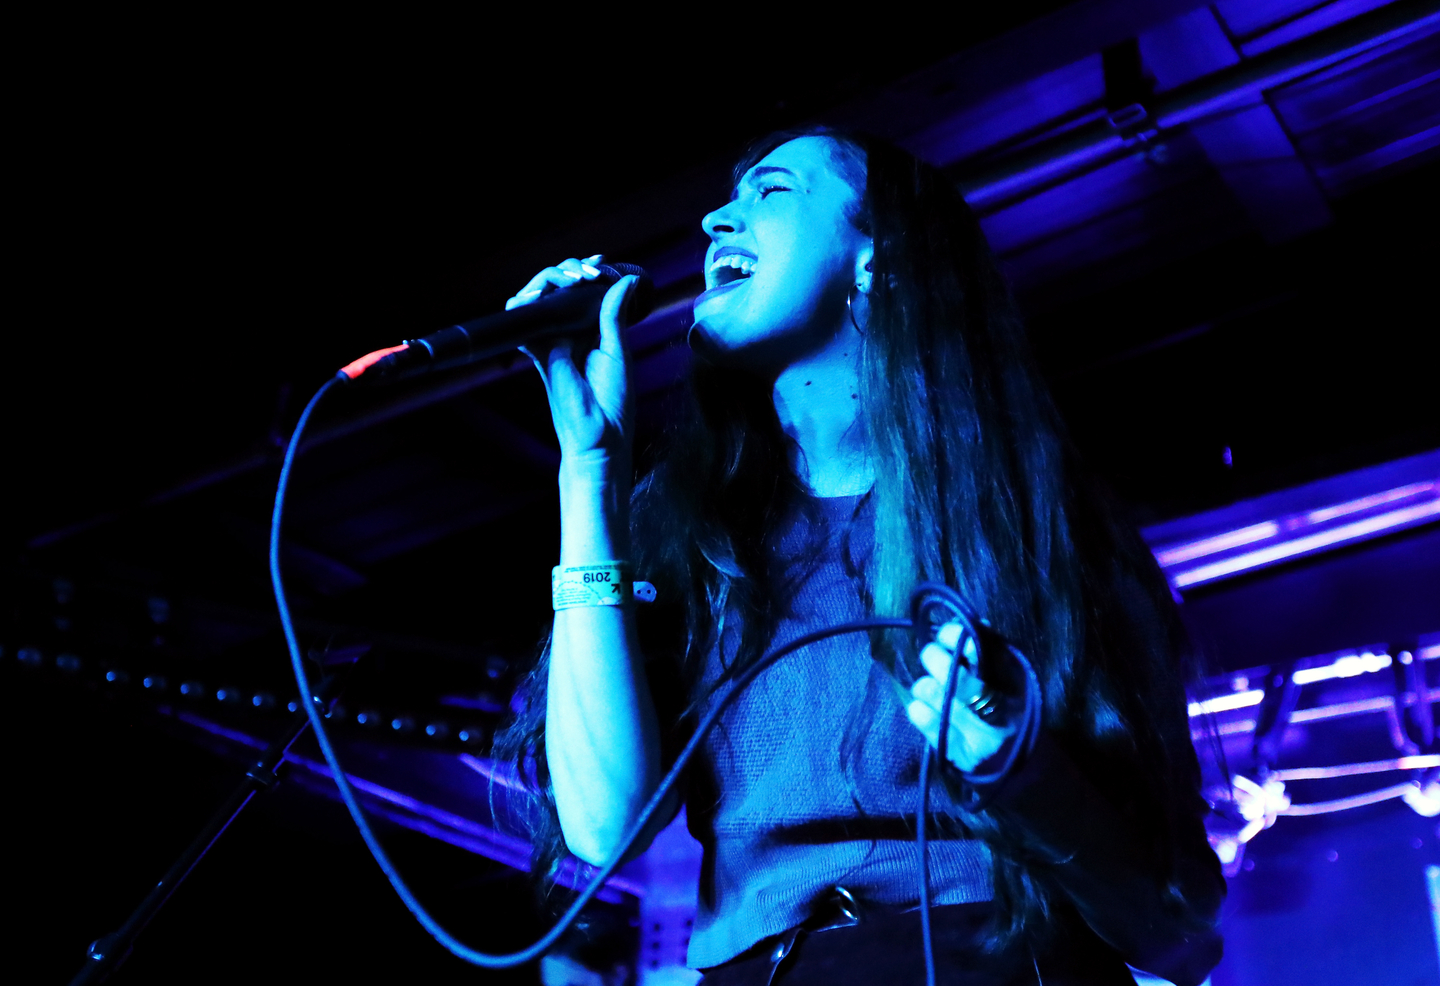 Madeline Follin of Cults performs onstage at Disco @ SXSW at JW Marriott.